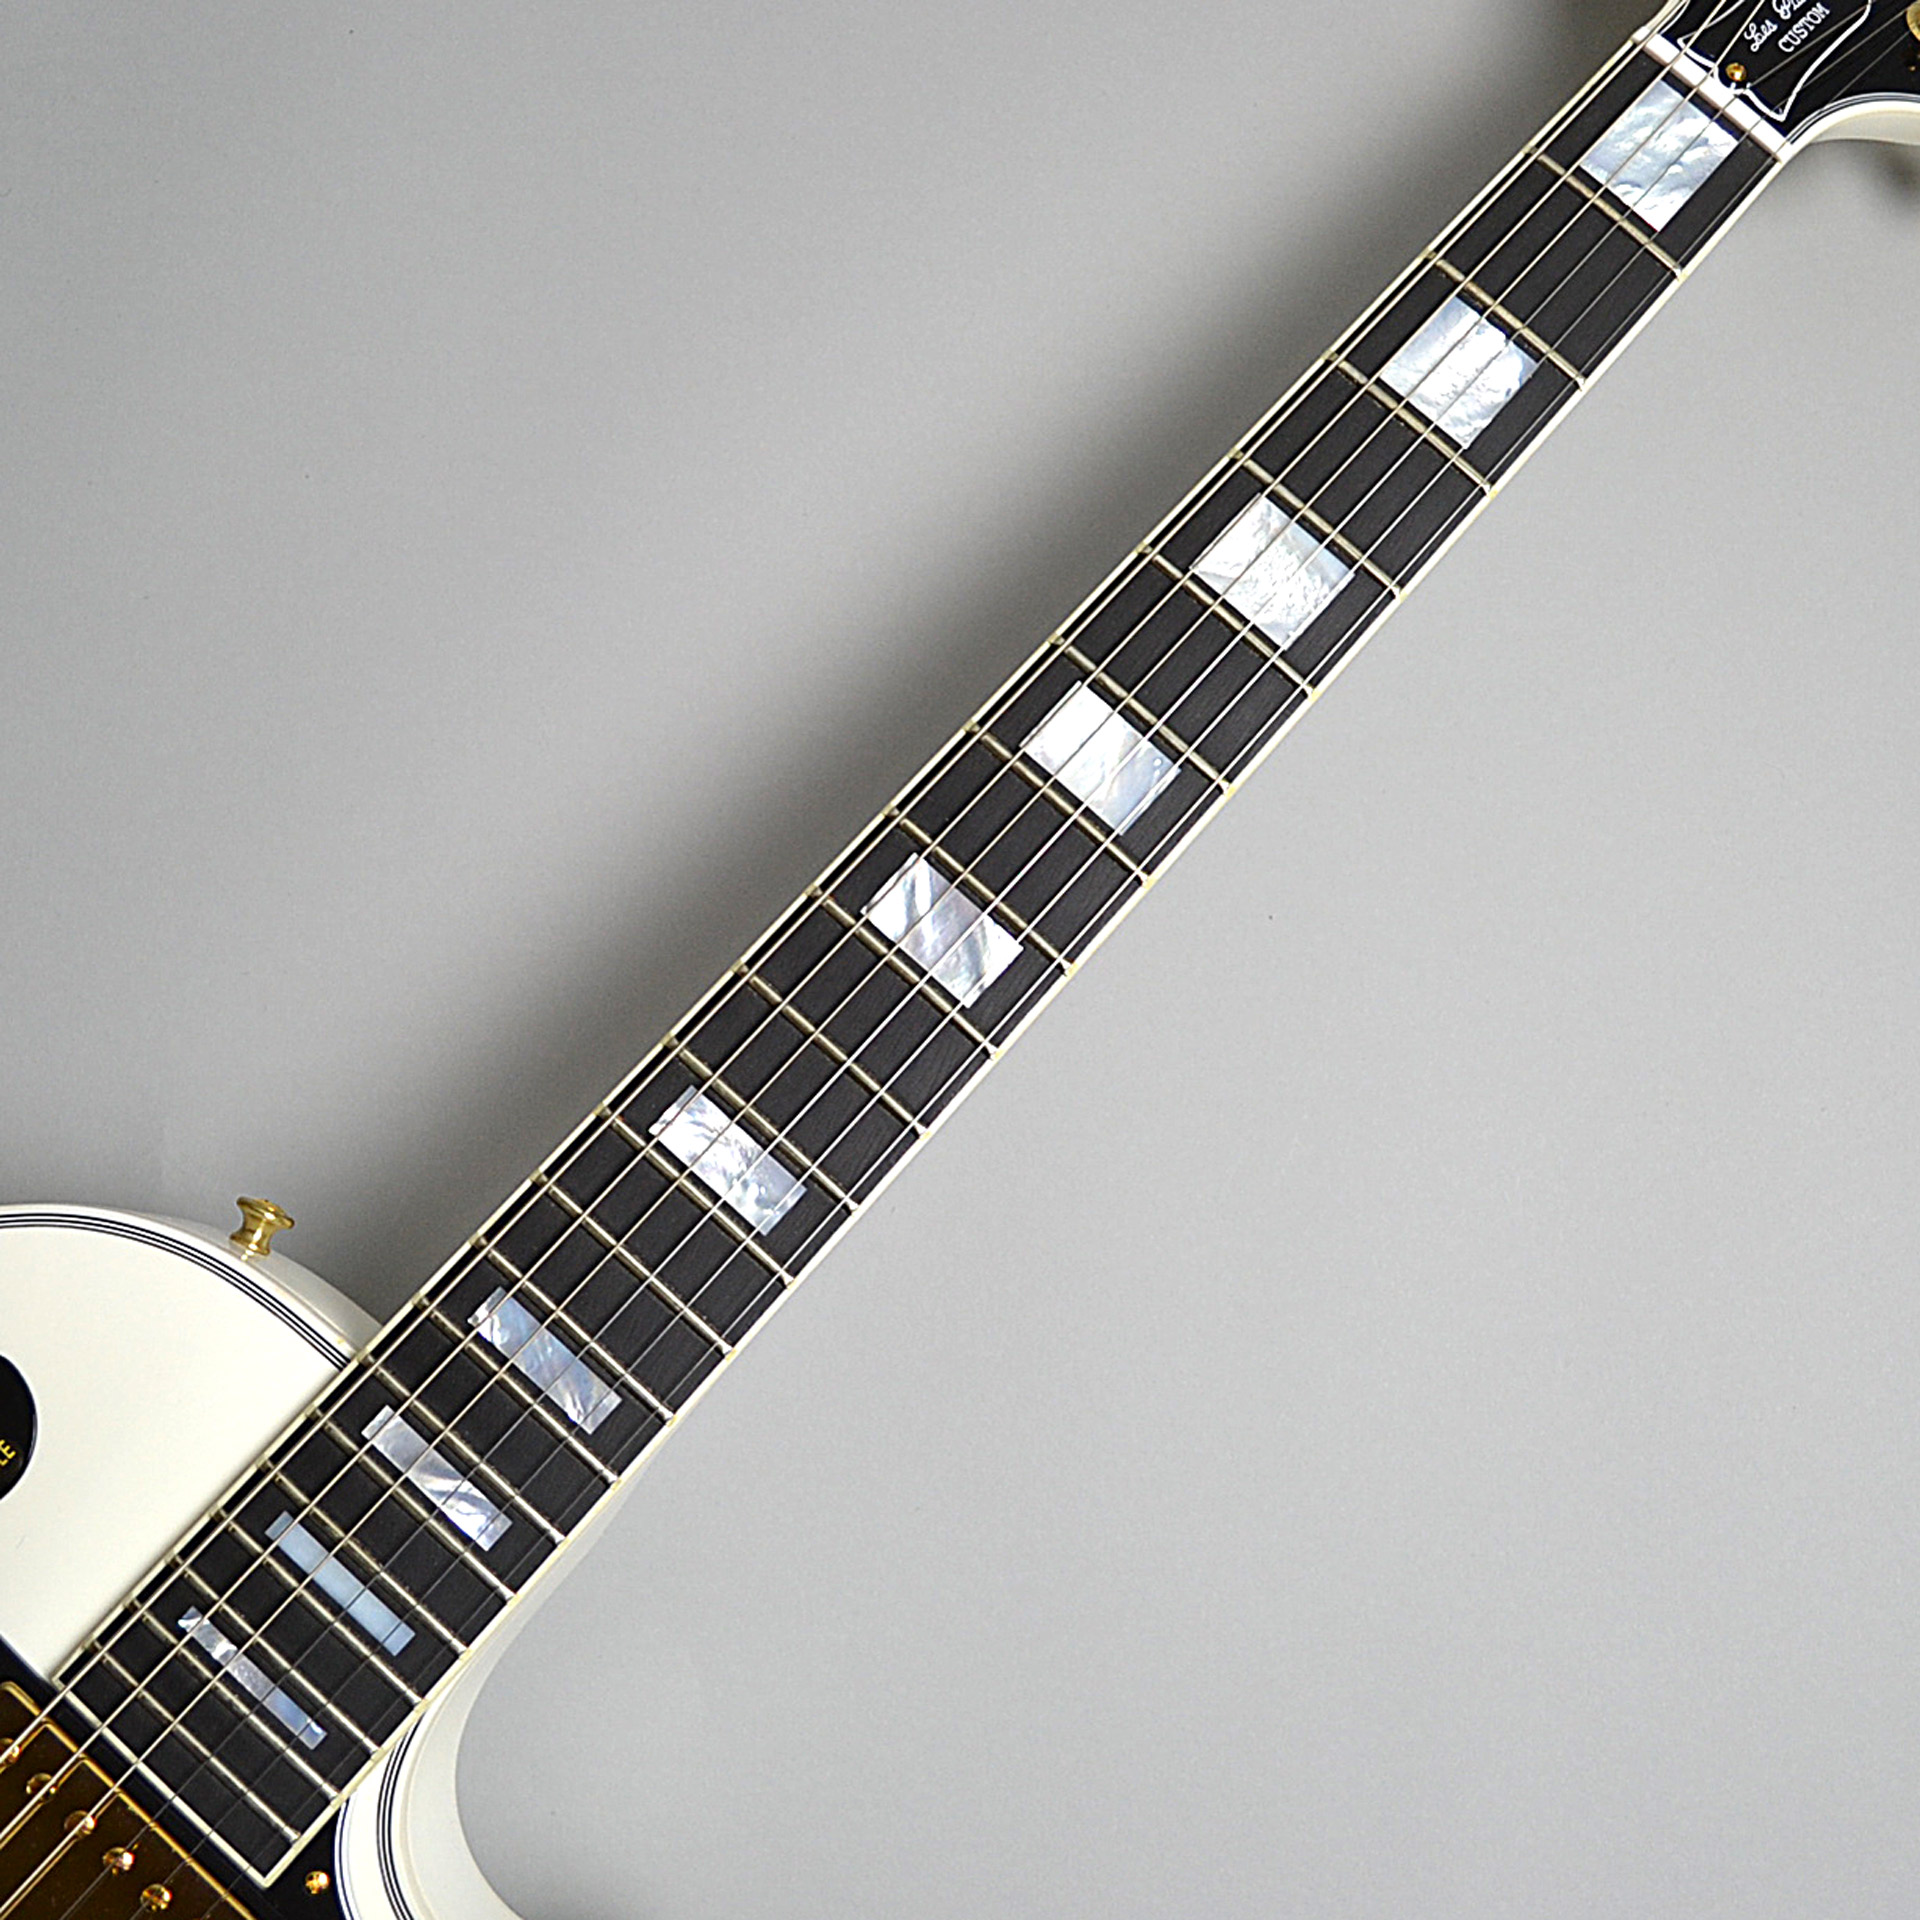 Les Paul Customの指板画像